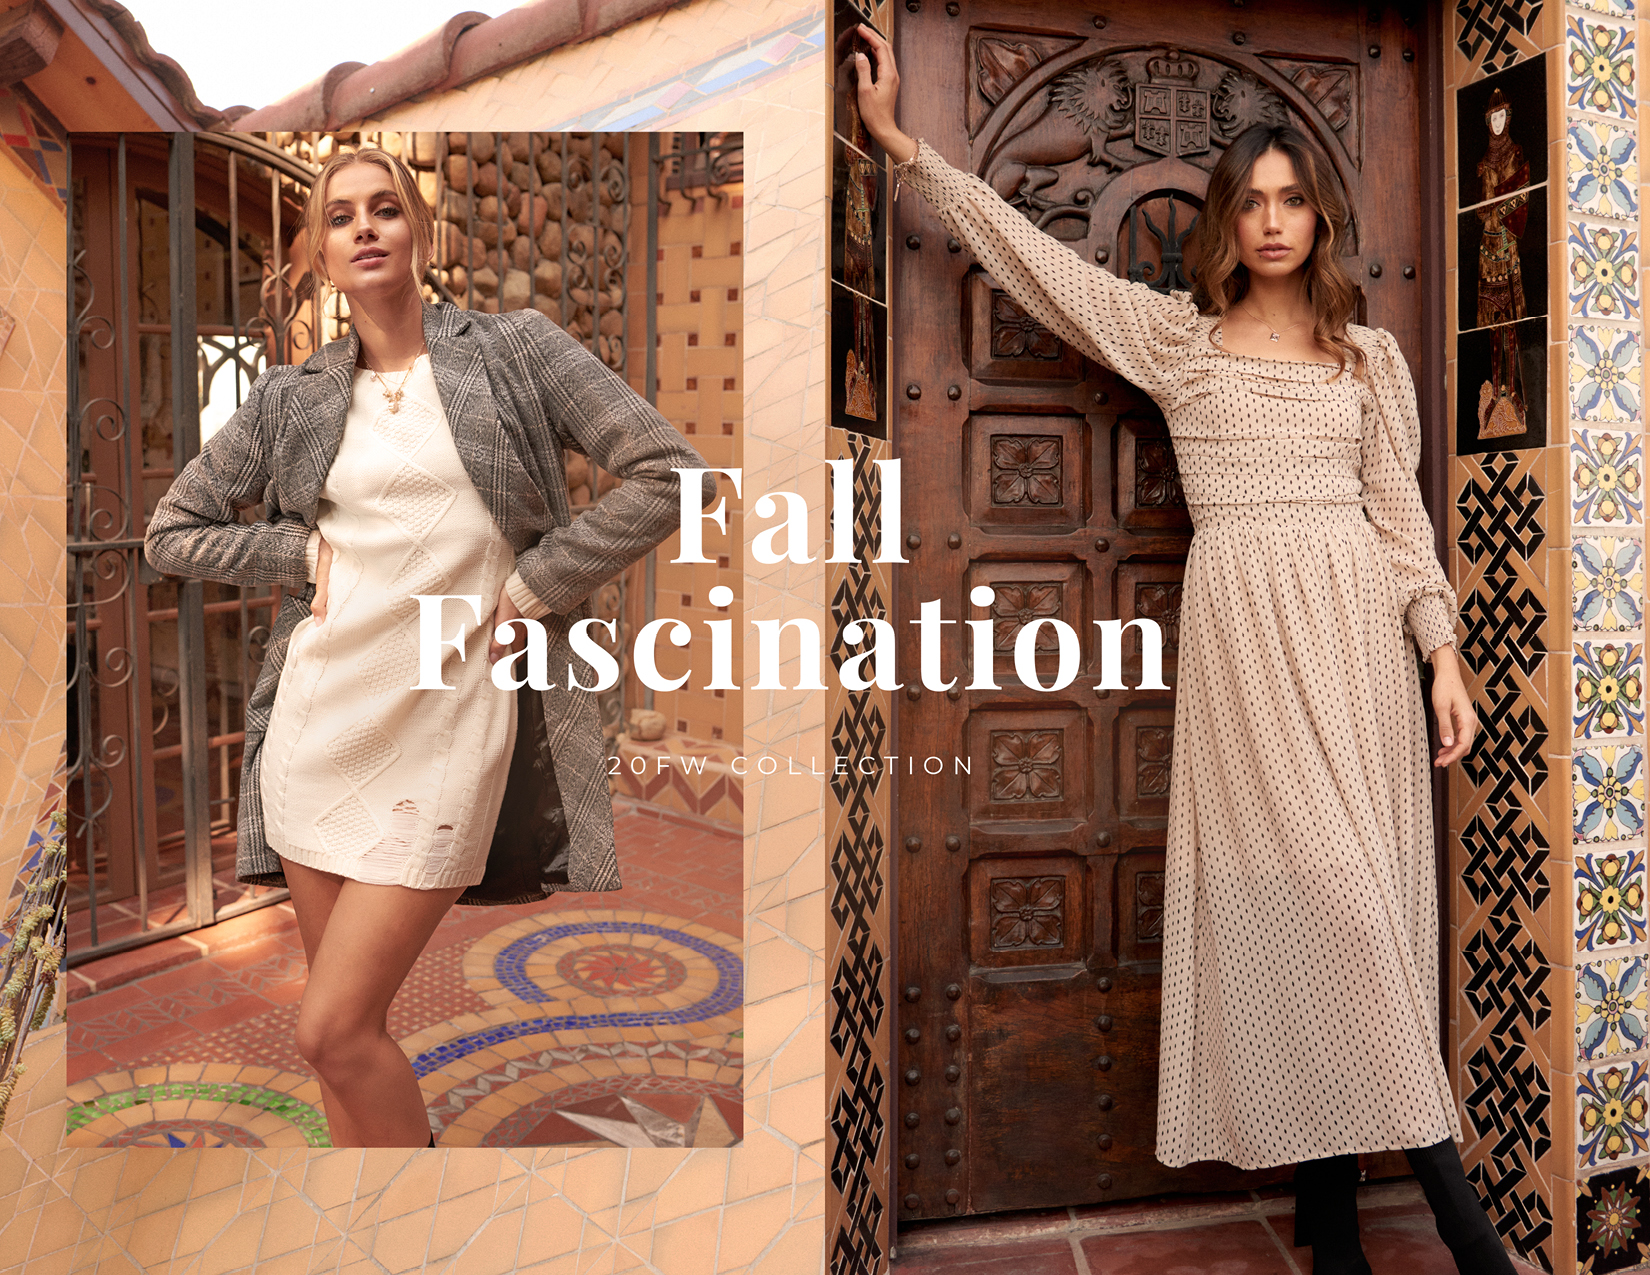 '20FW Fall Fascination